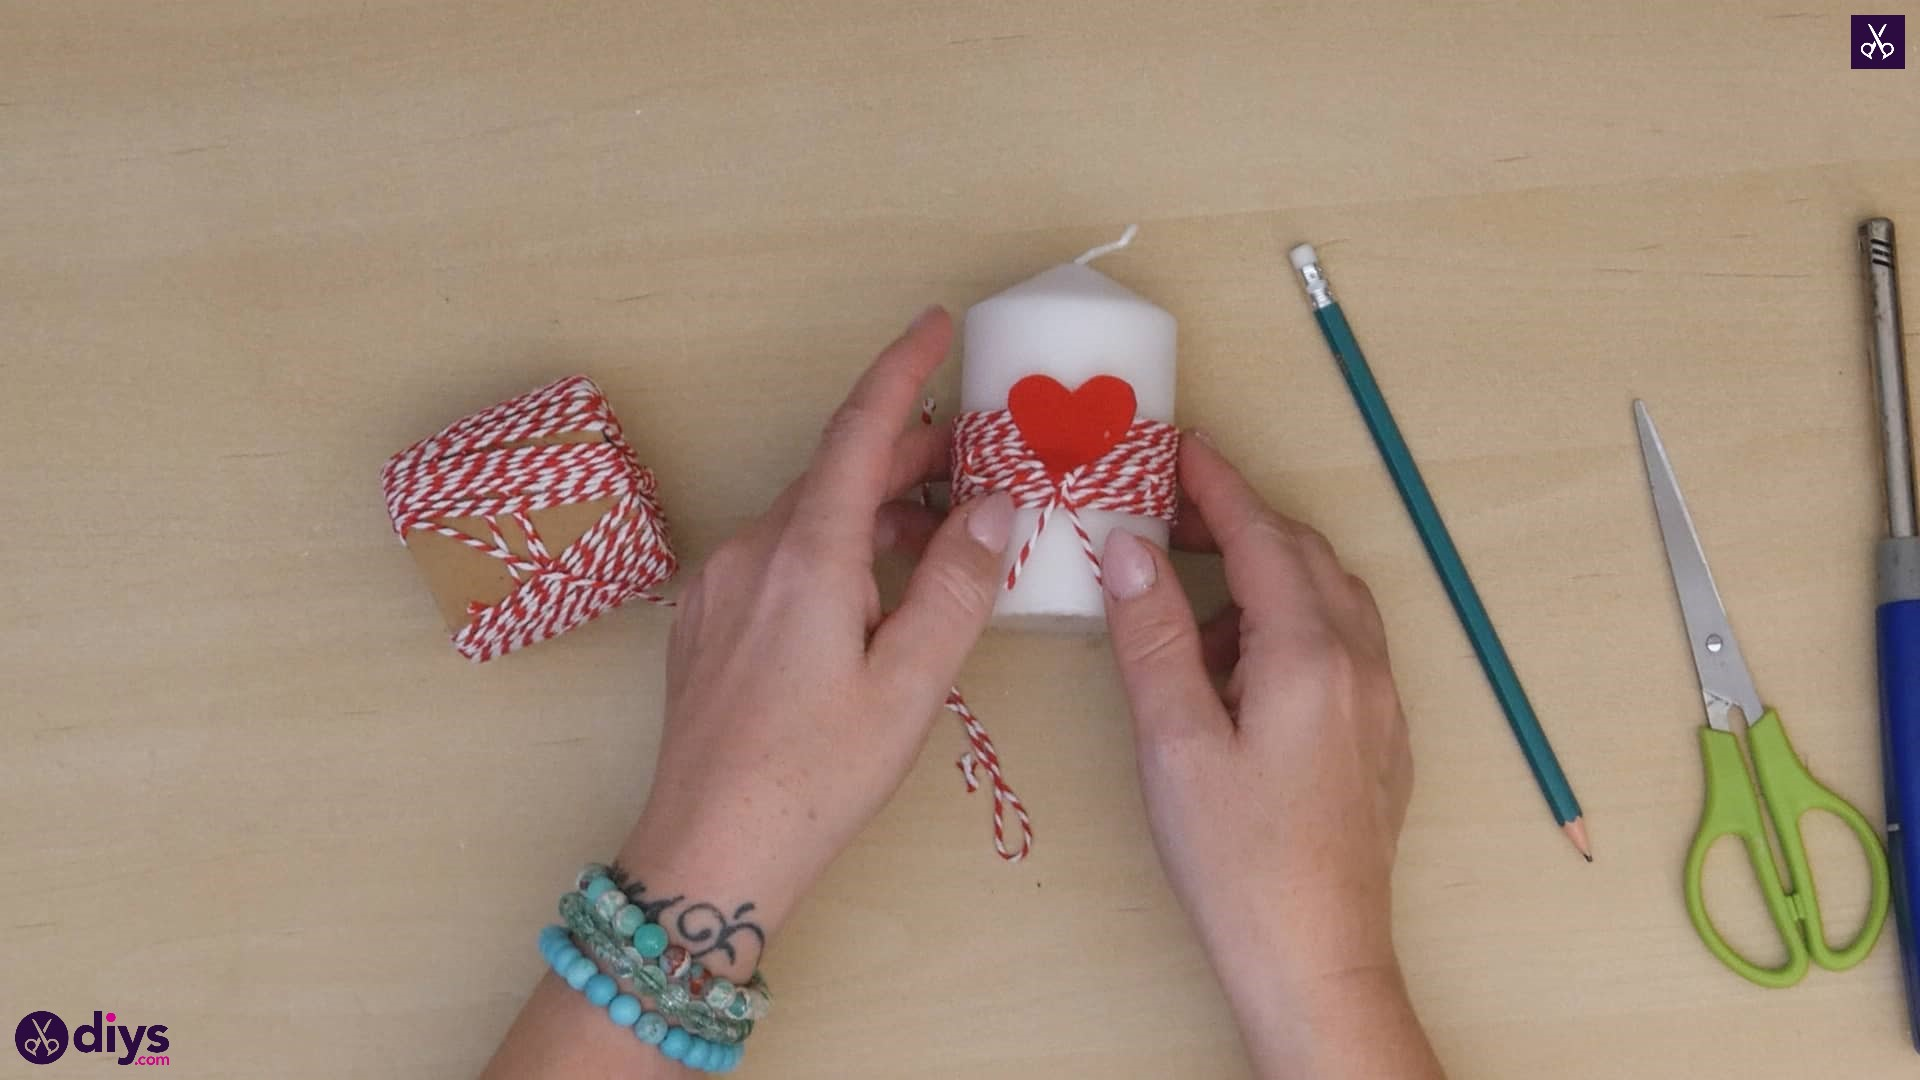 Diy valentine's candle red paper step 5d